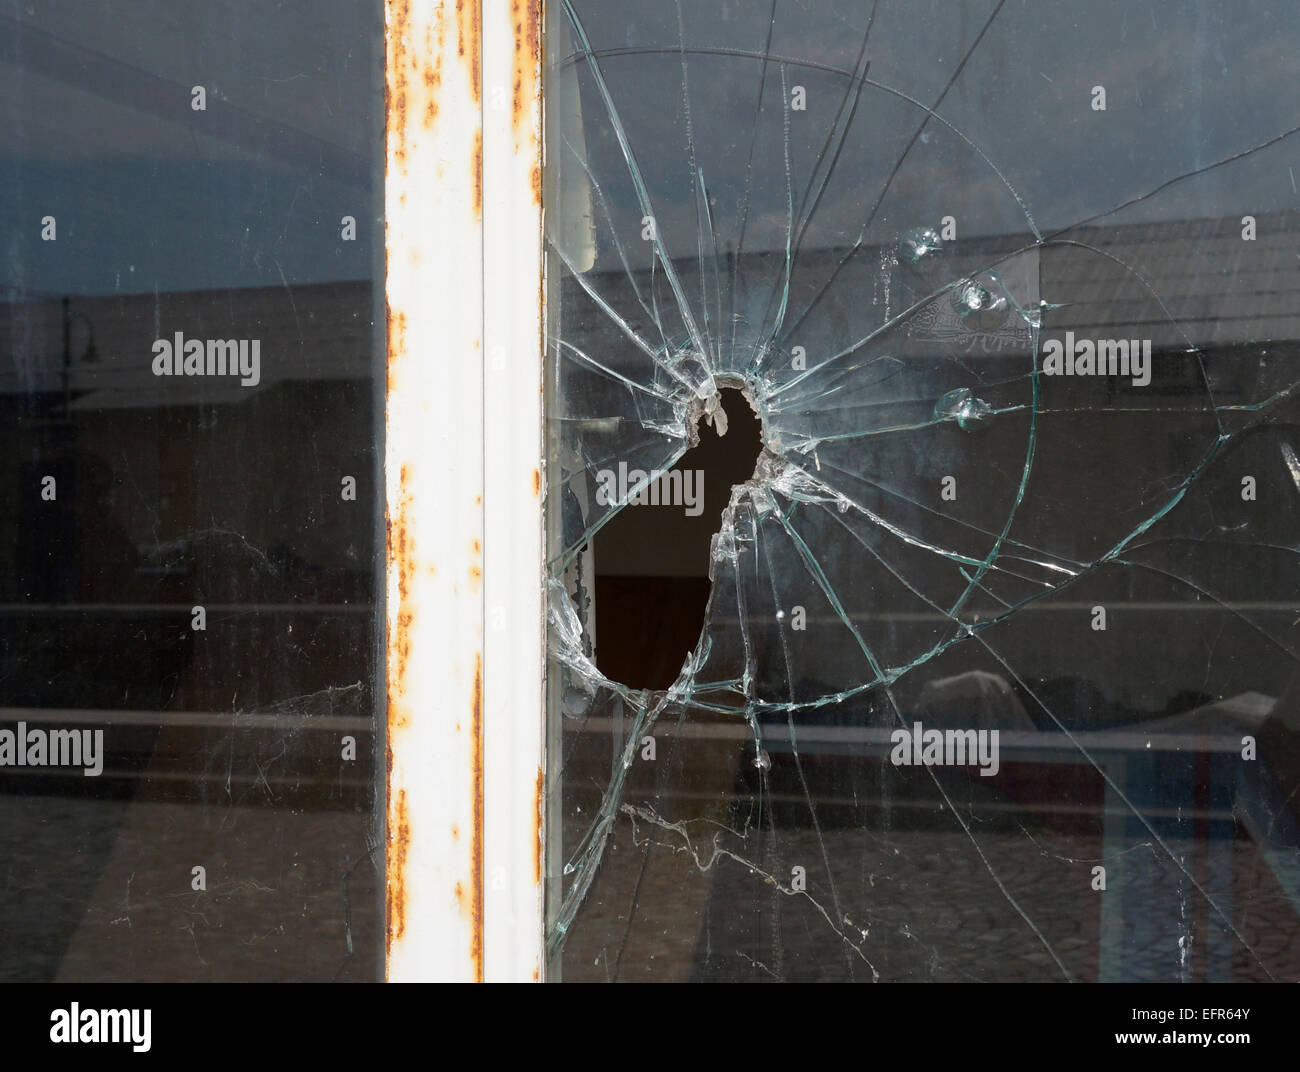 shattered and broken glass of a window - Stock Image